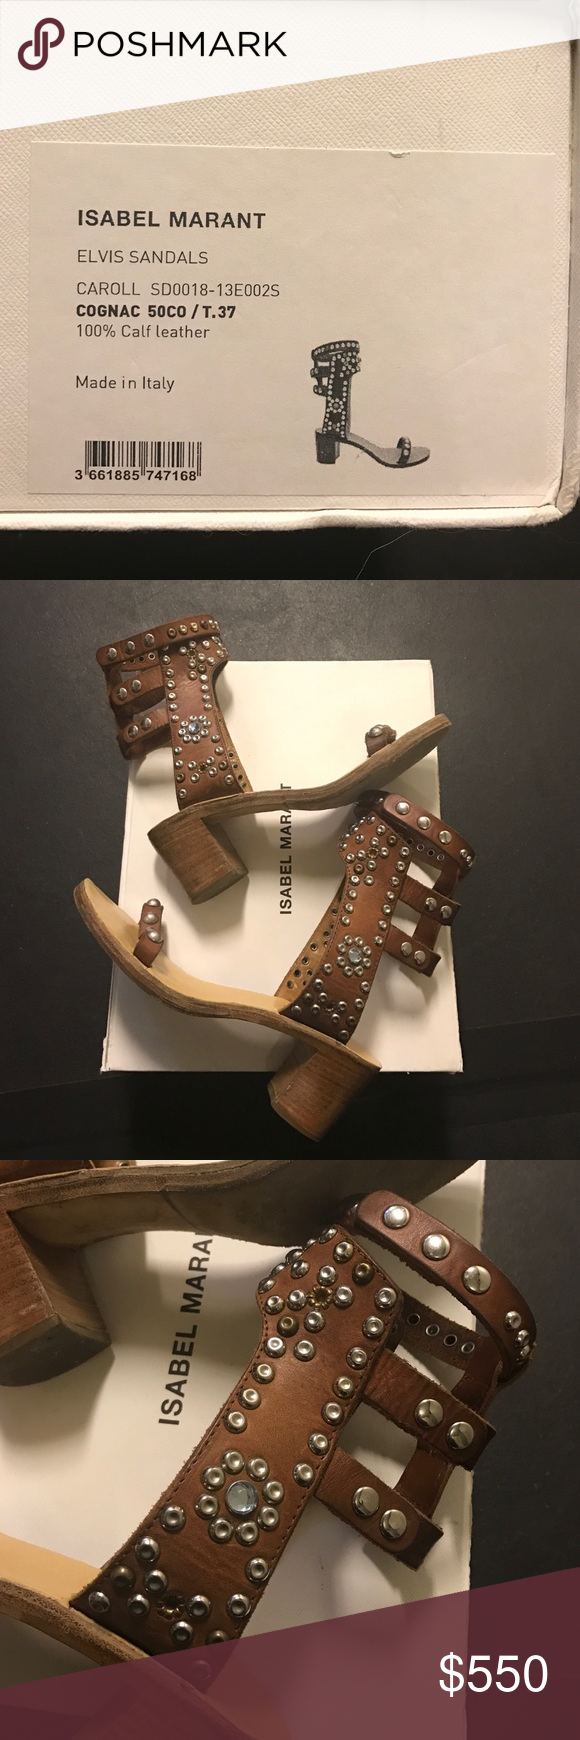 Isabel marant Elvis sandal Isabel marant Elvis Caroll sandal. Cognac color calf leather made in Italy. Impossible to find!  Runway 2013. Size 37. 100% authentic /real. Isabel Marant Shoes Sandals